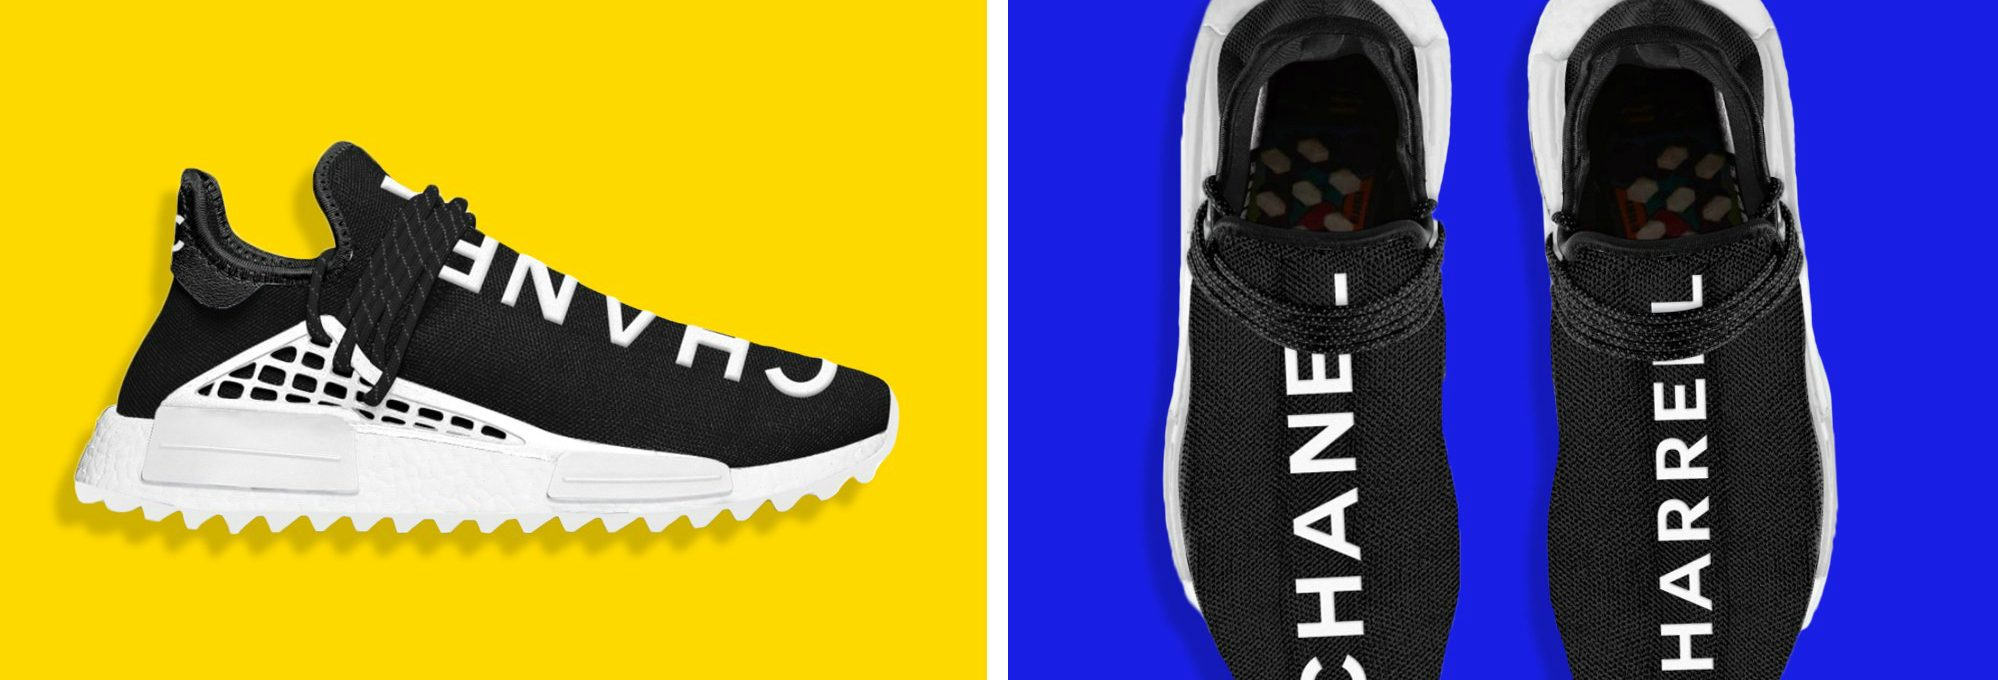 expensive sneakers 2018